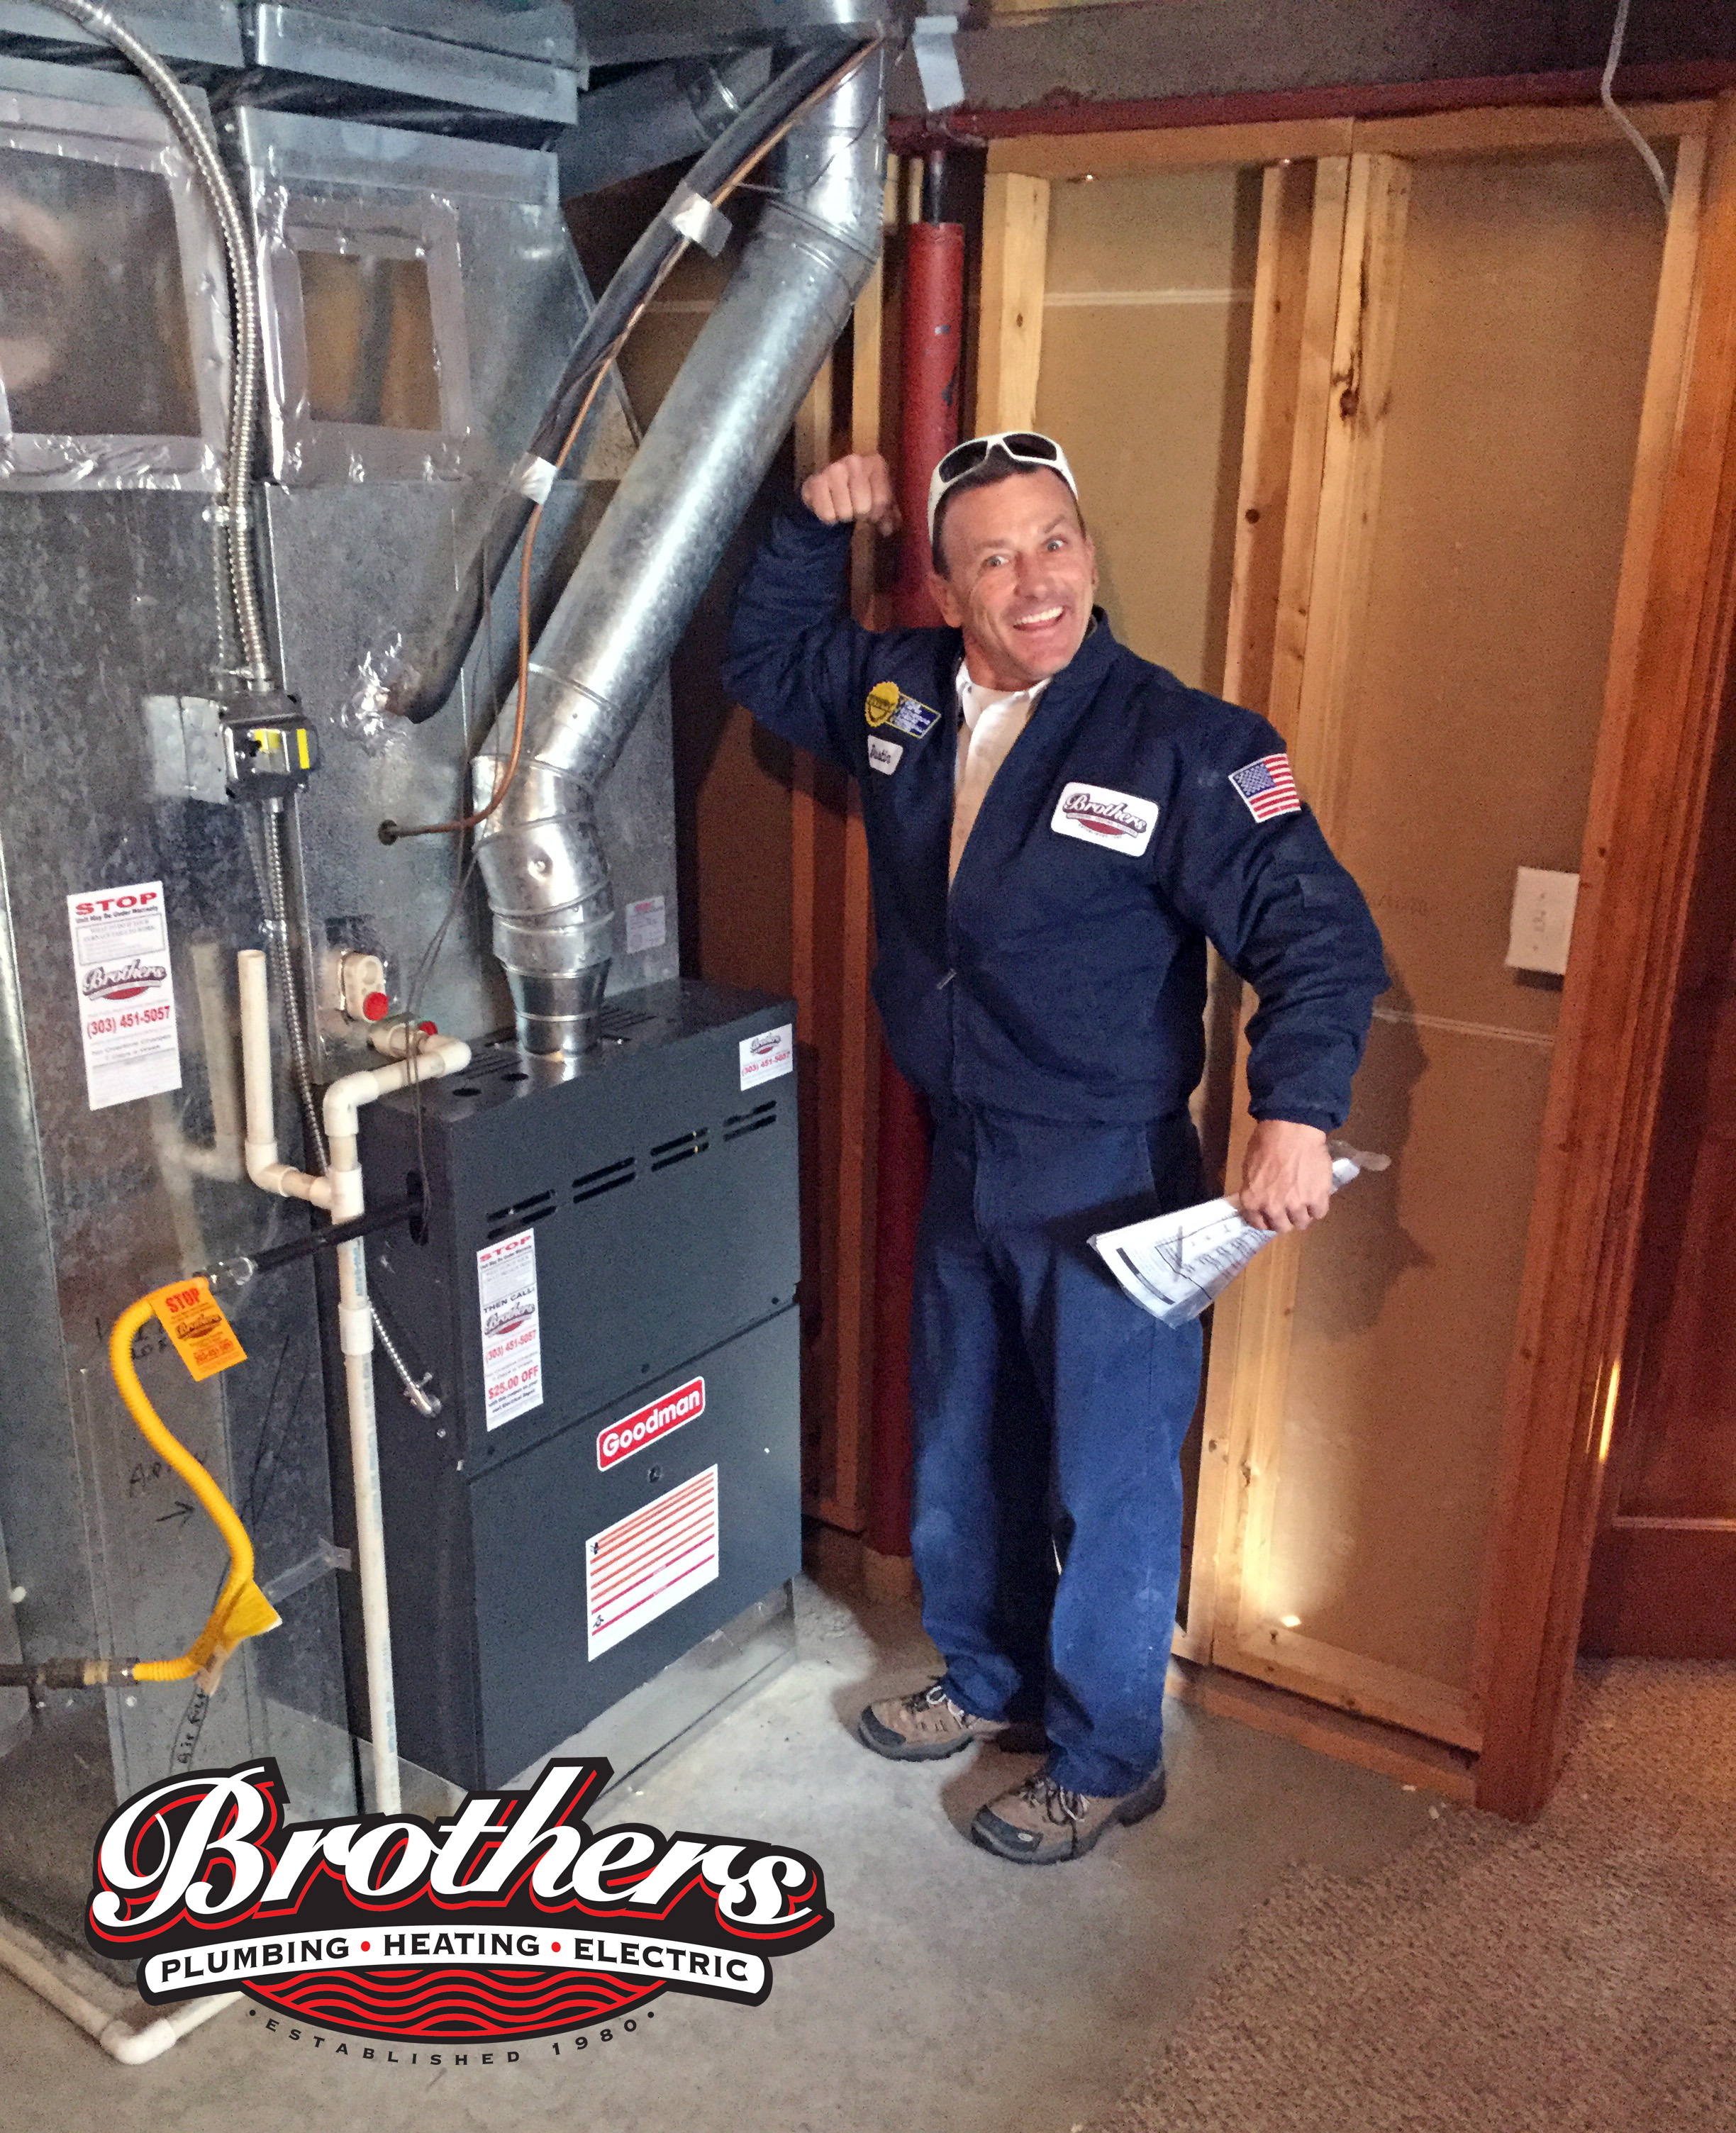 Brothers Plumbing, Heating And Electric Denver, CO 80243